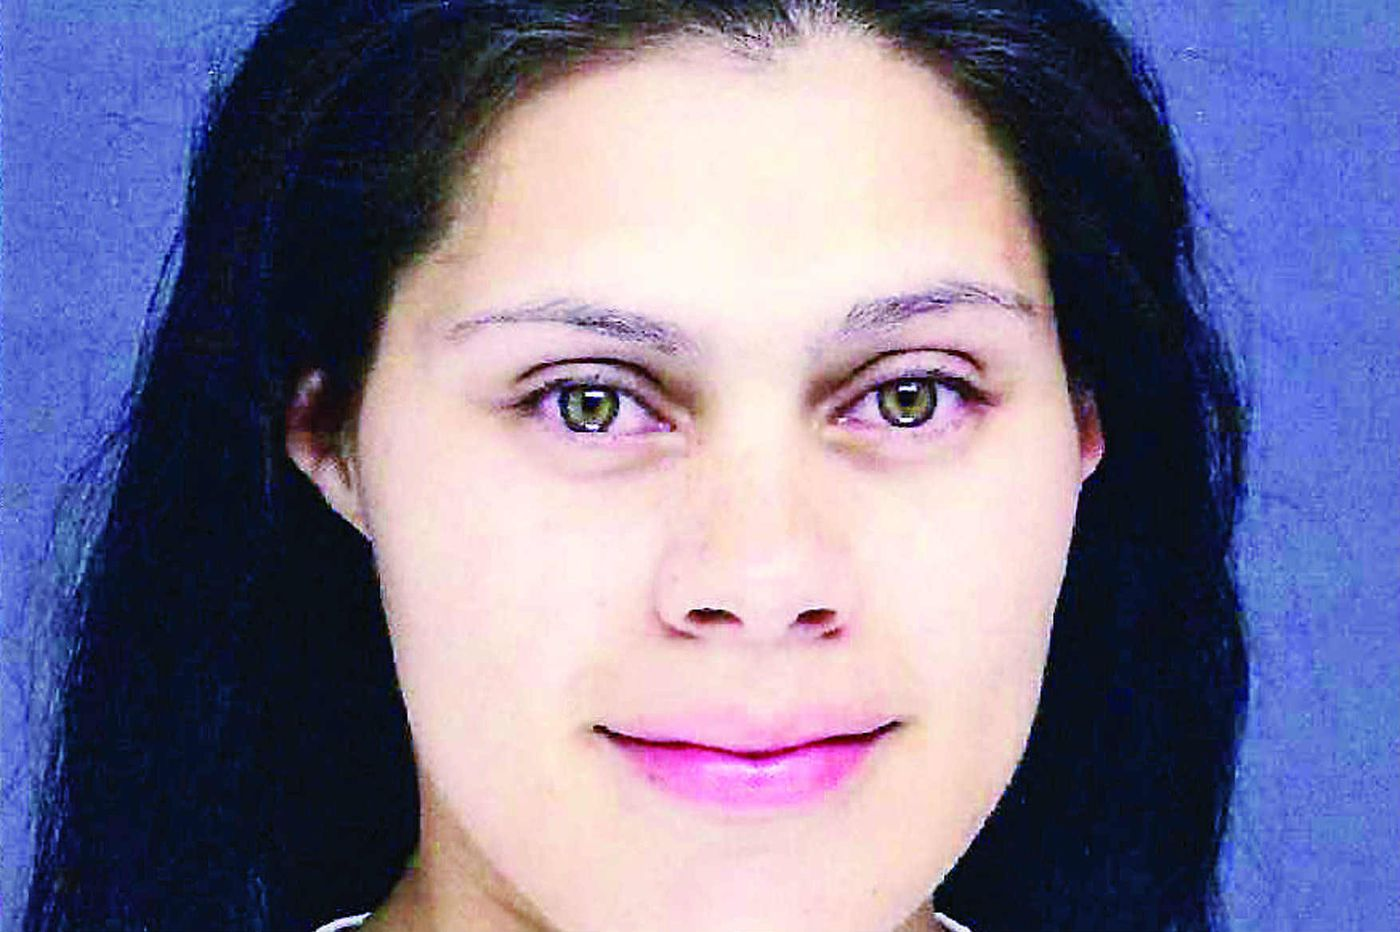 Cops: Drug-dealing mom-to-be had heroin and a gun